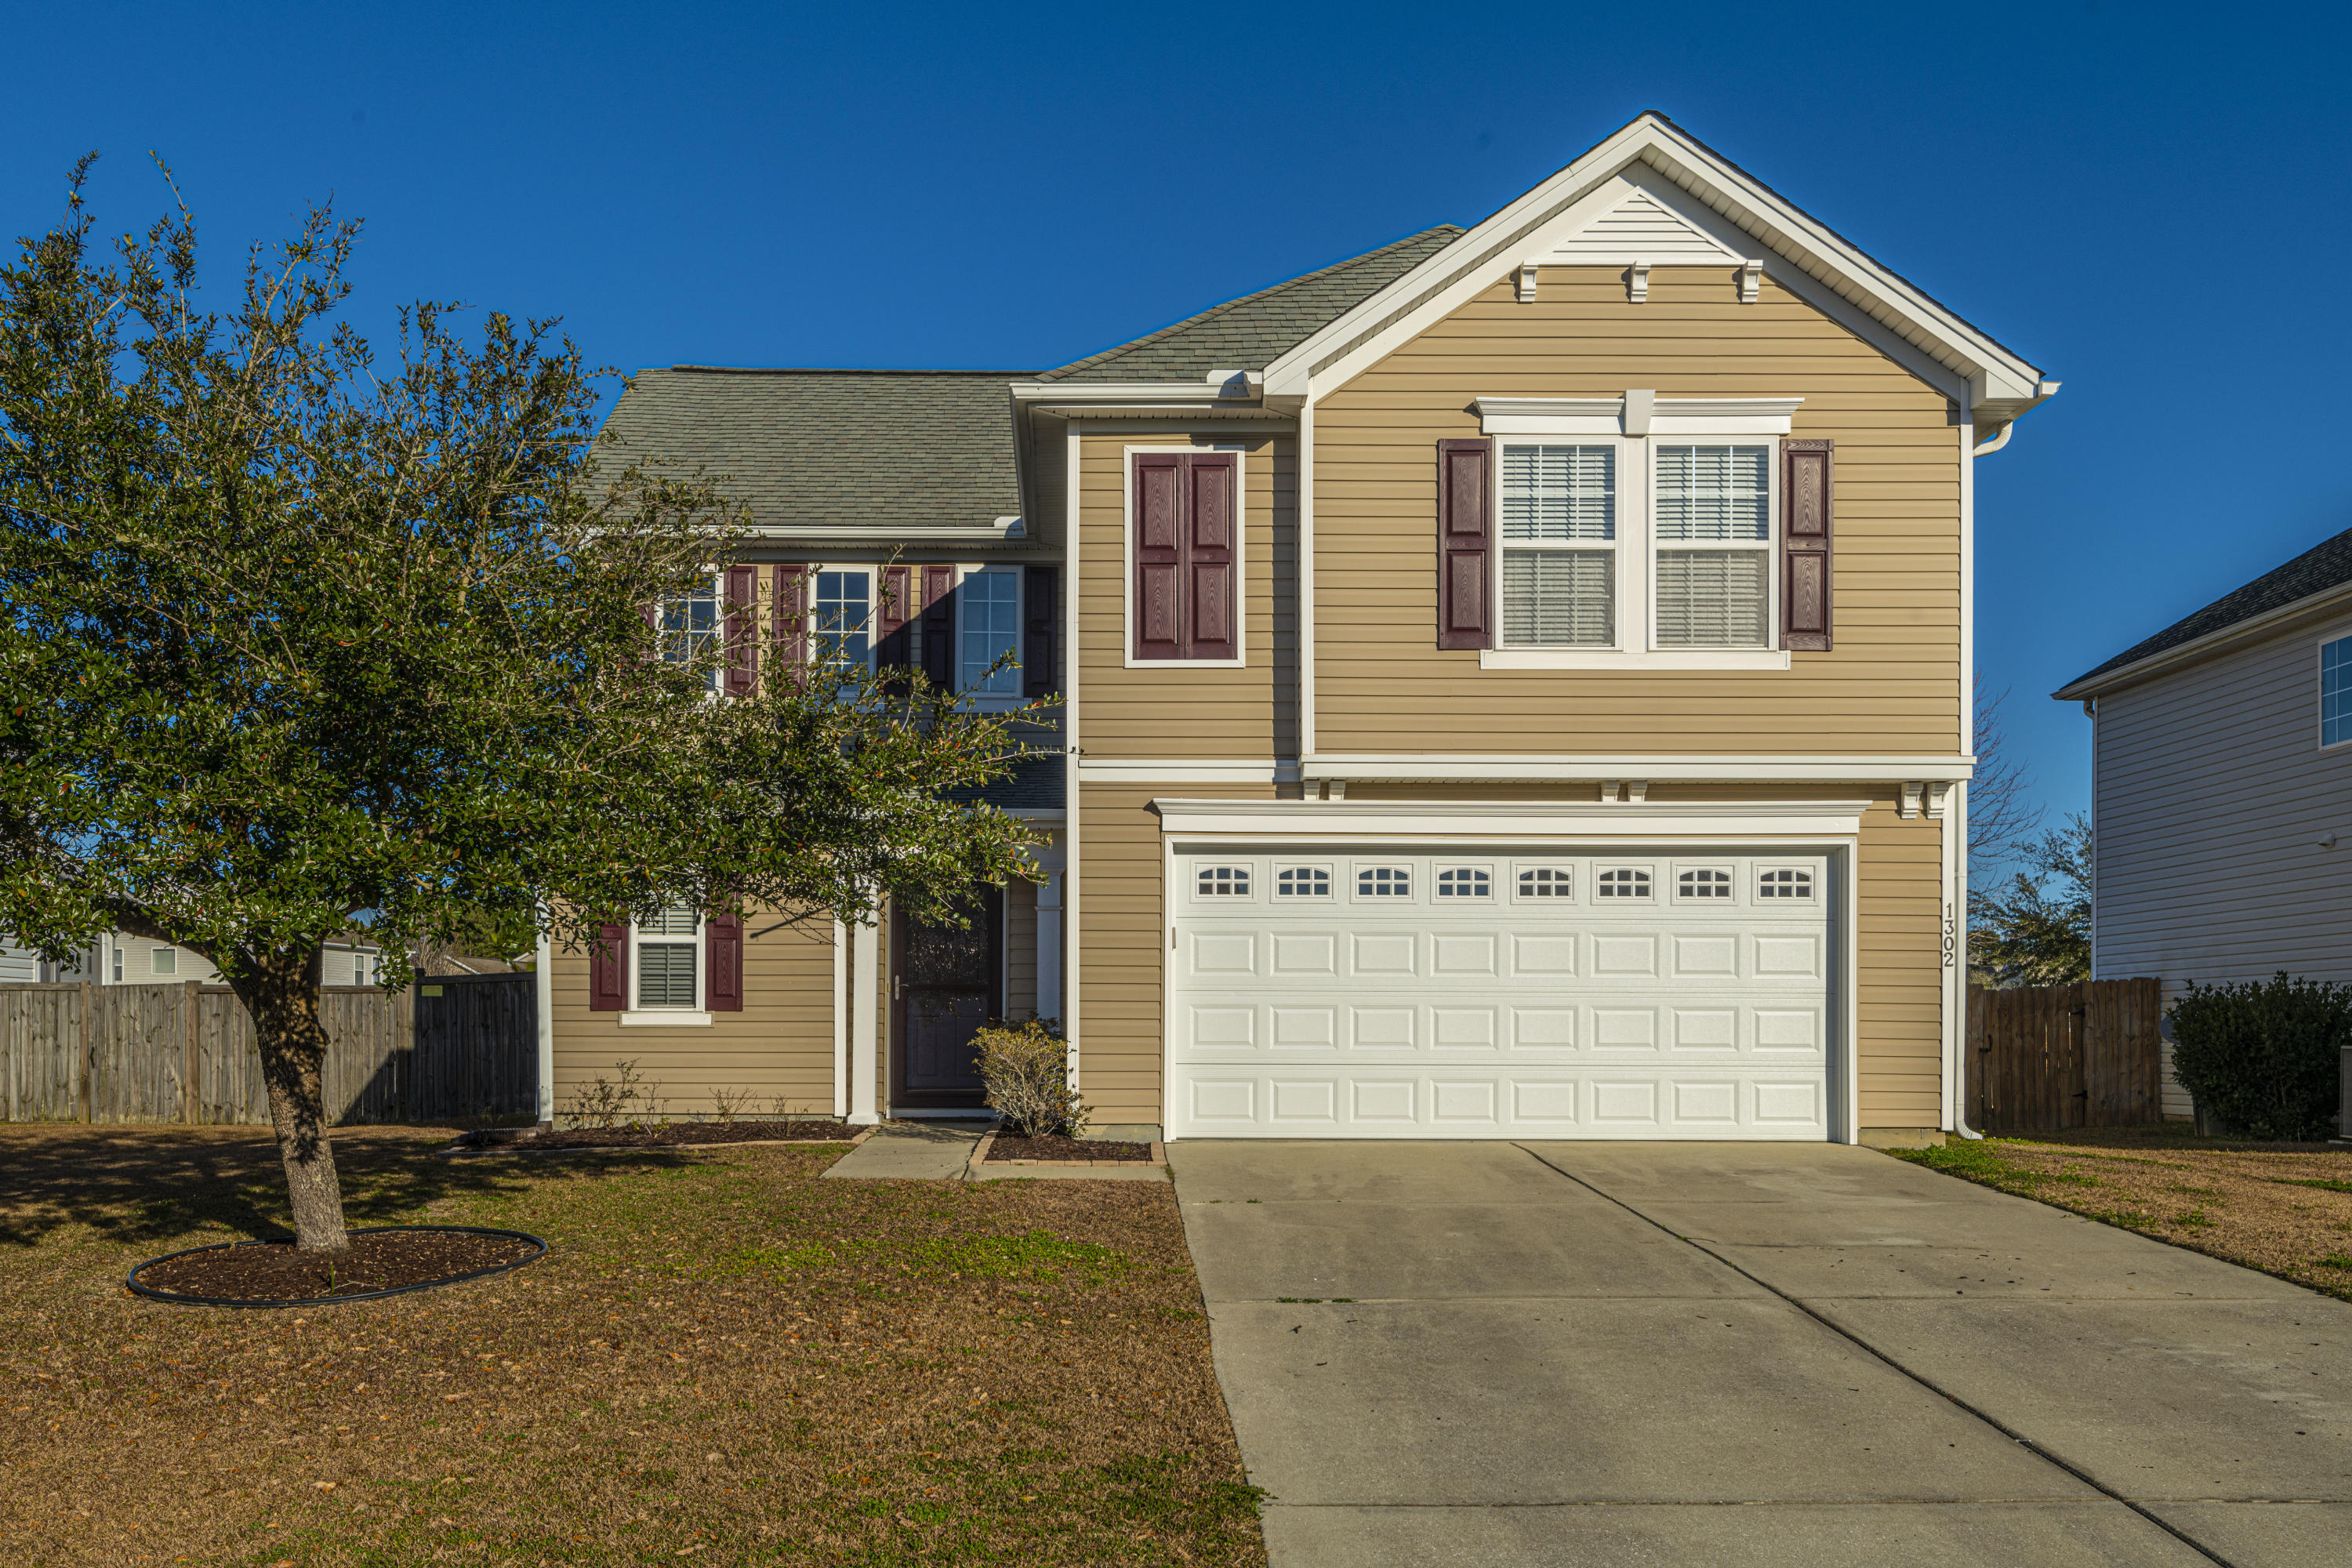 1302 Basketweaver Way Hanahan, Sc 29410